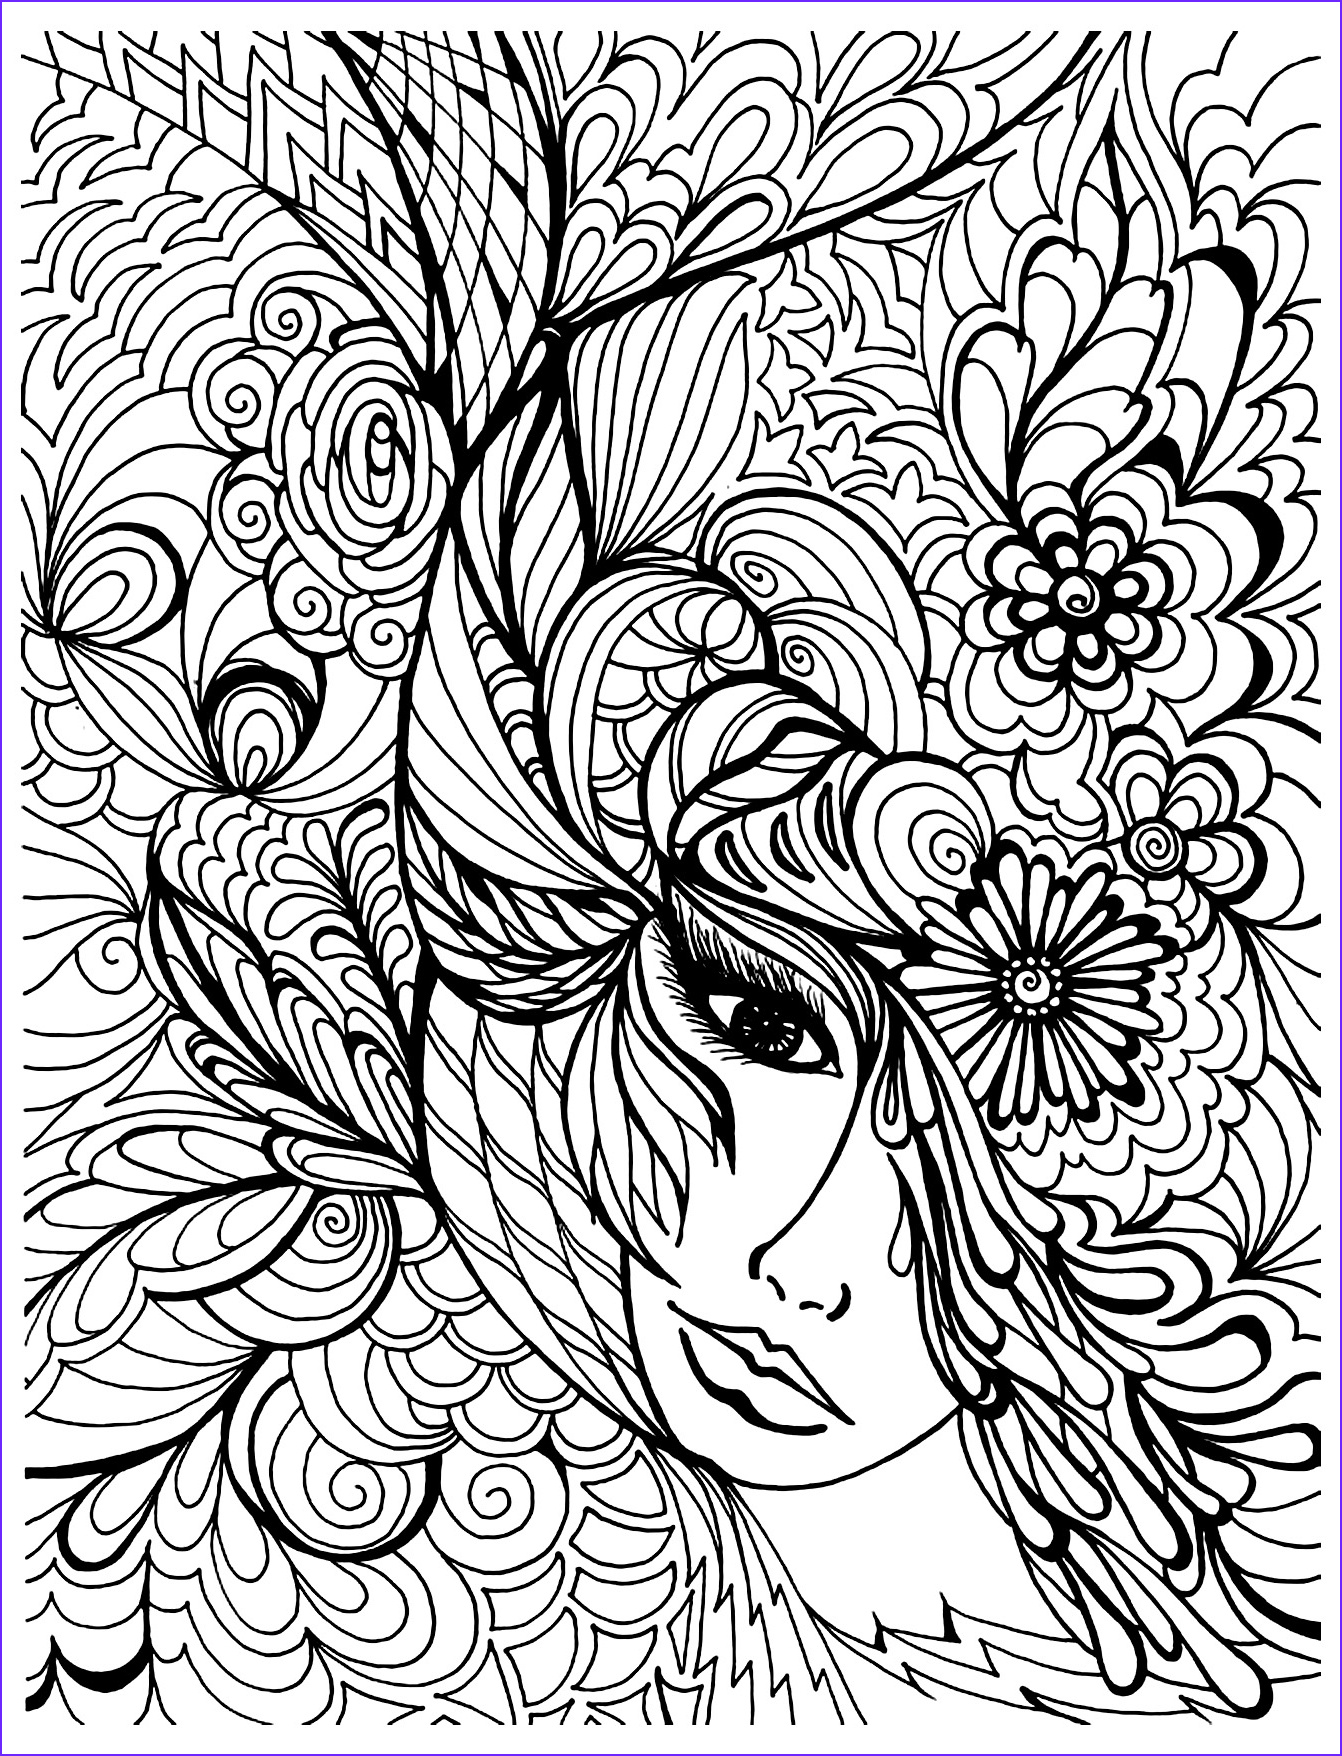 Coloring Pages for Grown Ups Cool Stock Free Coloring Pages for Grown Ups Face Ve ation